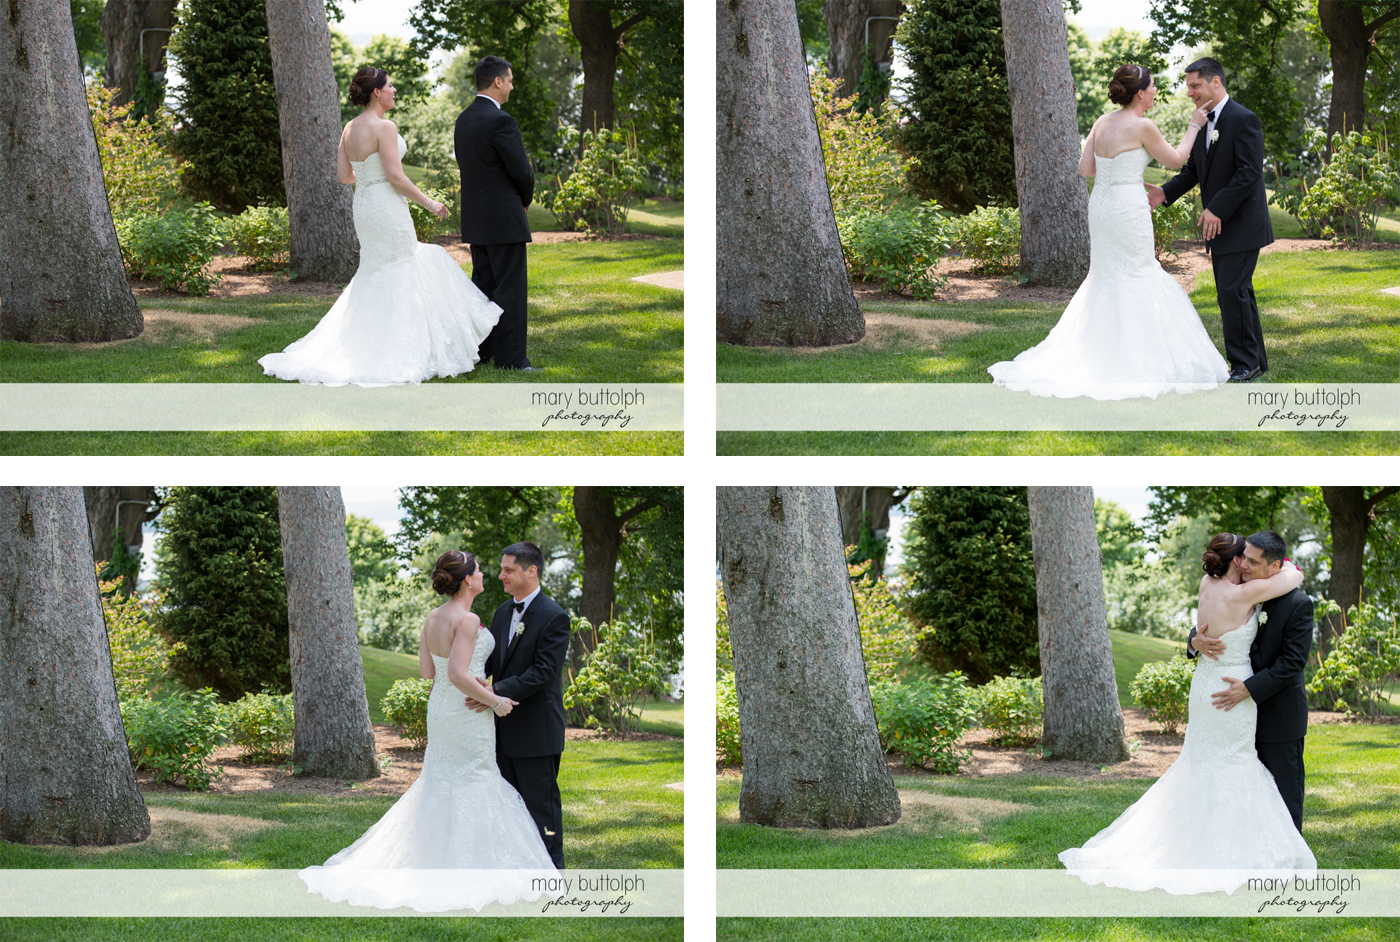 Different shots of the couple in the garden at the Inns of Aurora Wedding